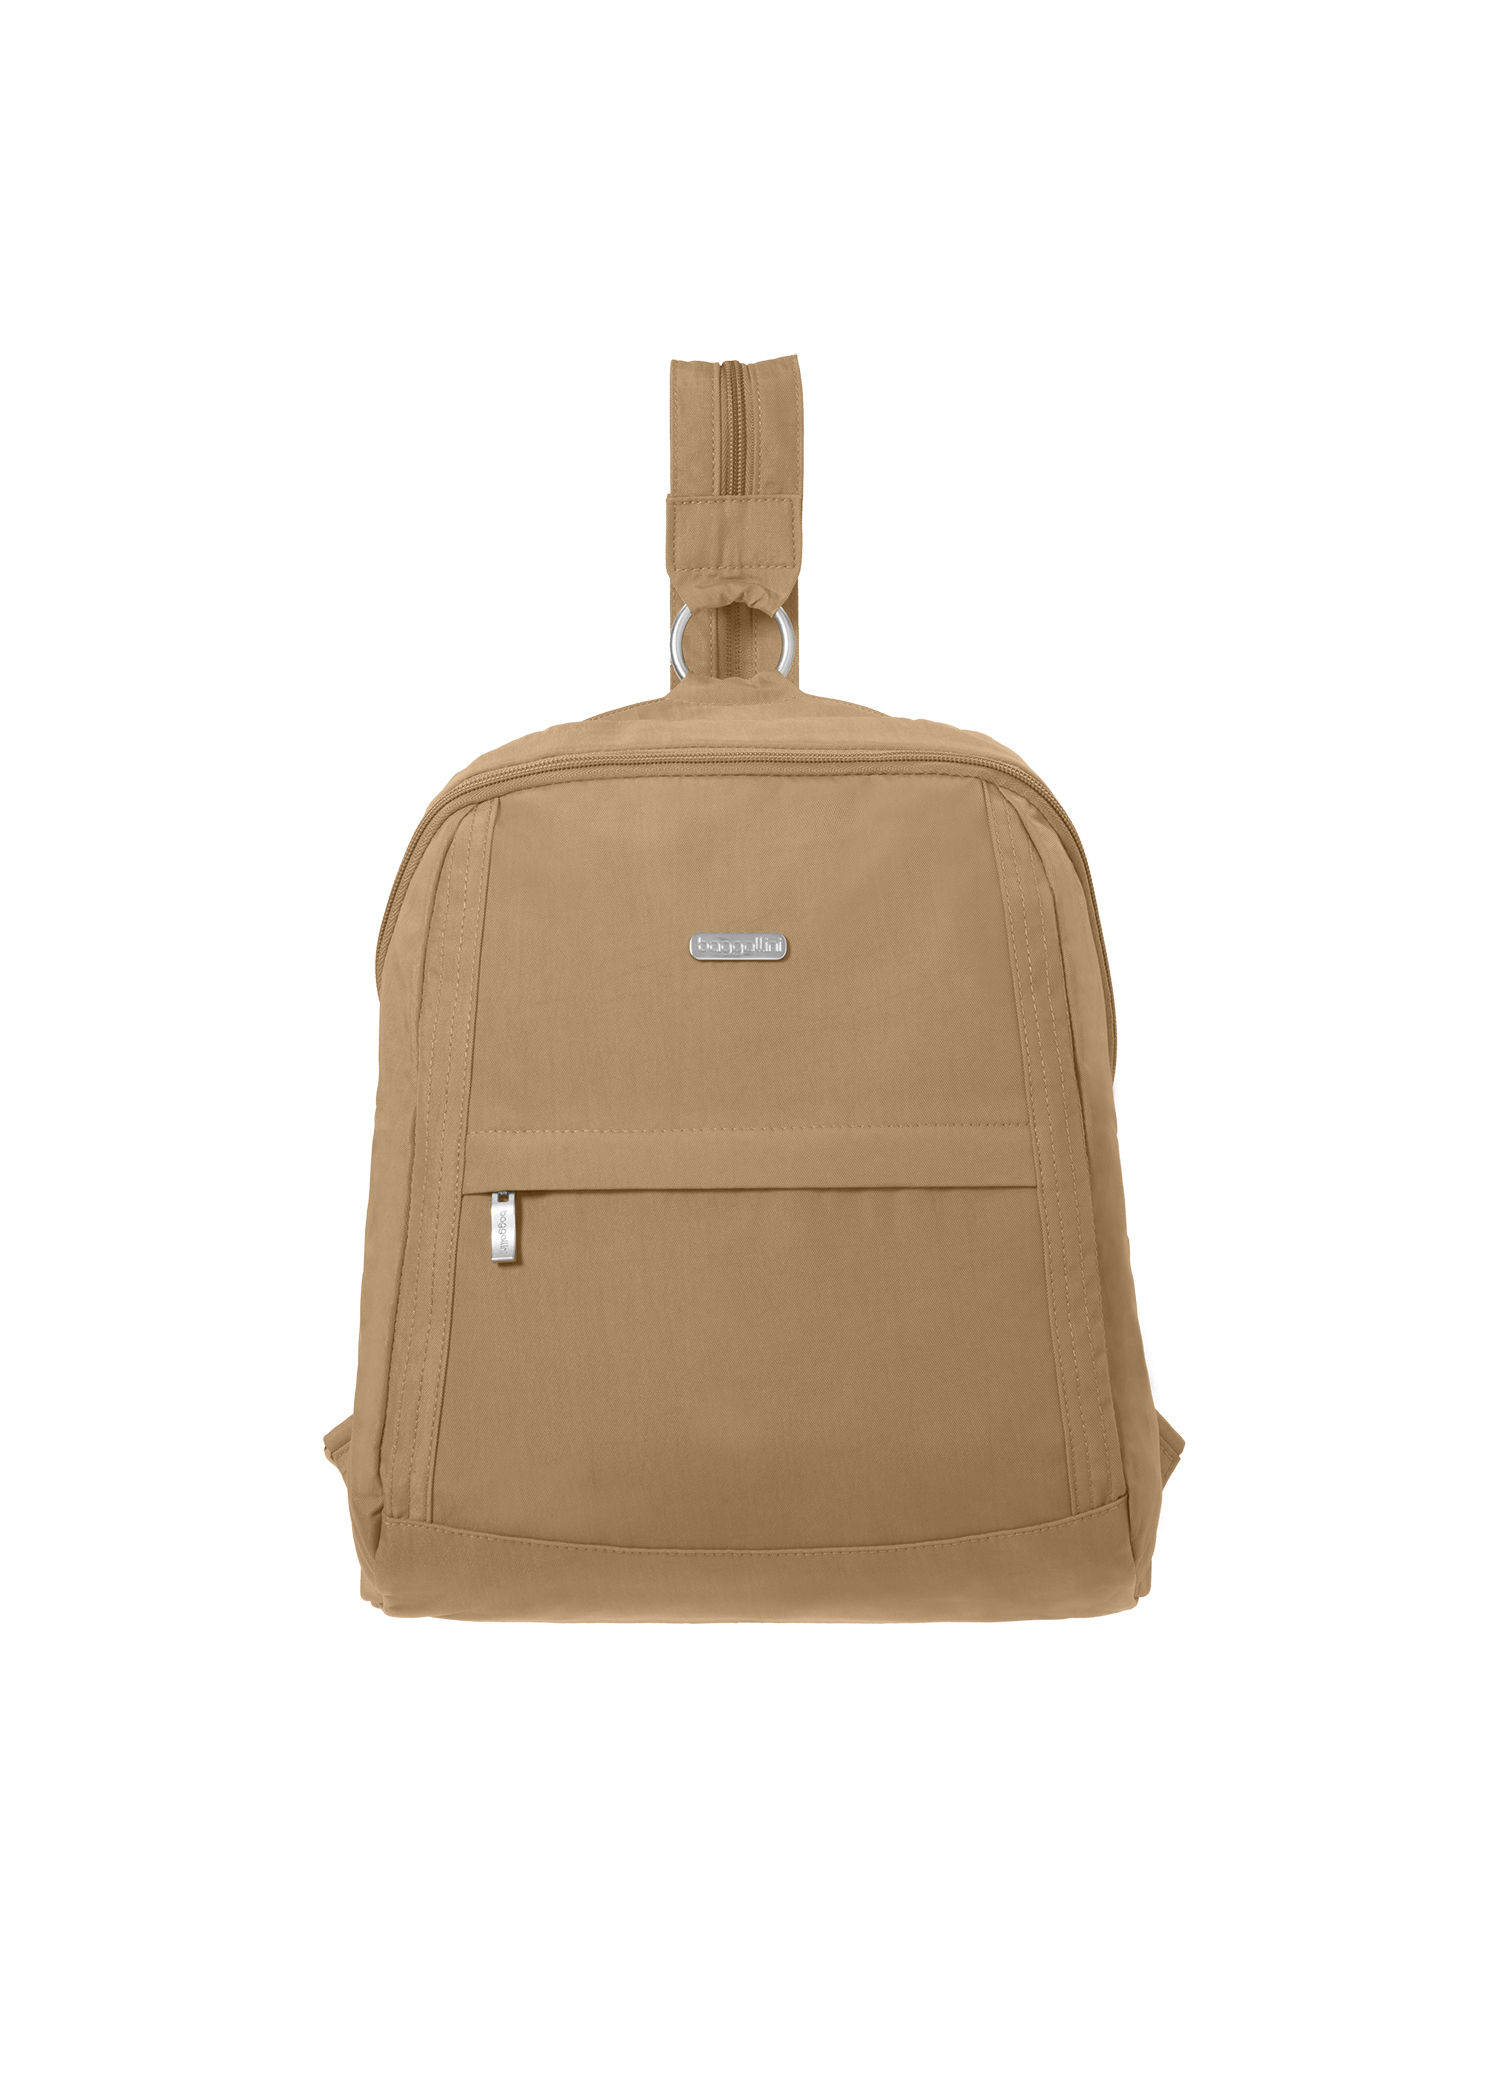 Excursion Sling Backpack